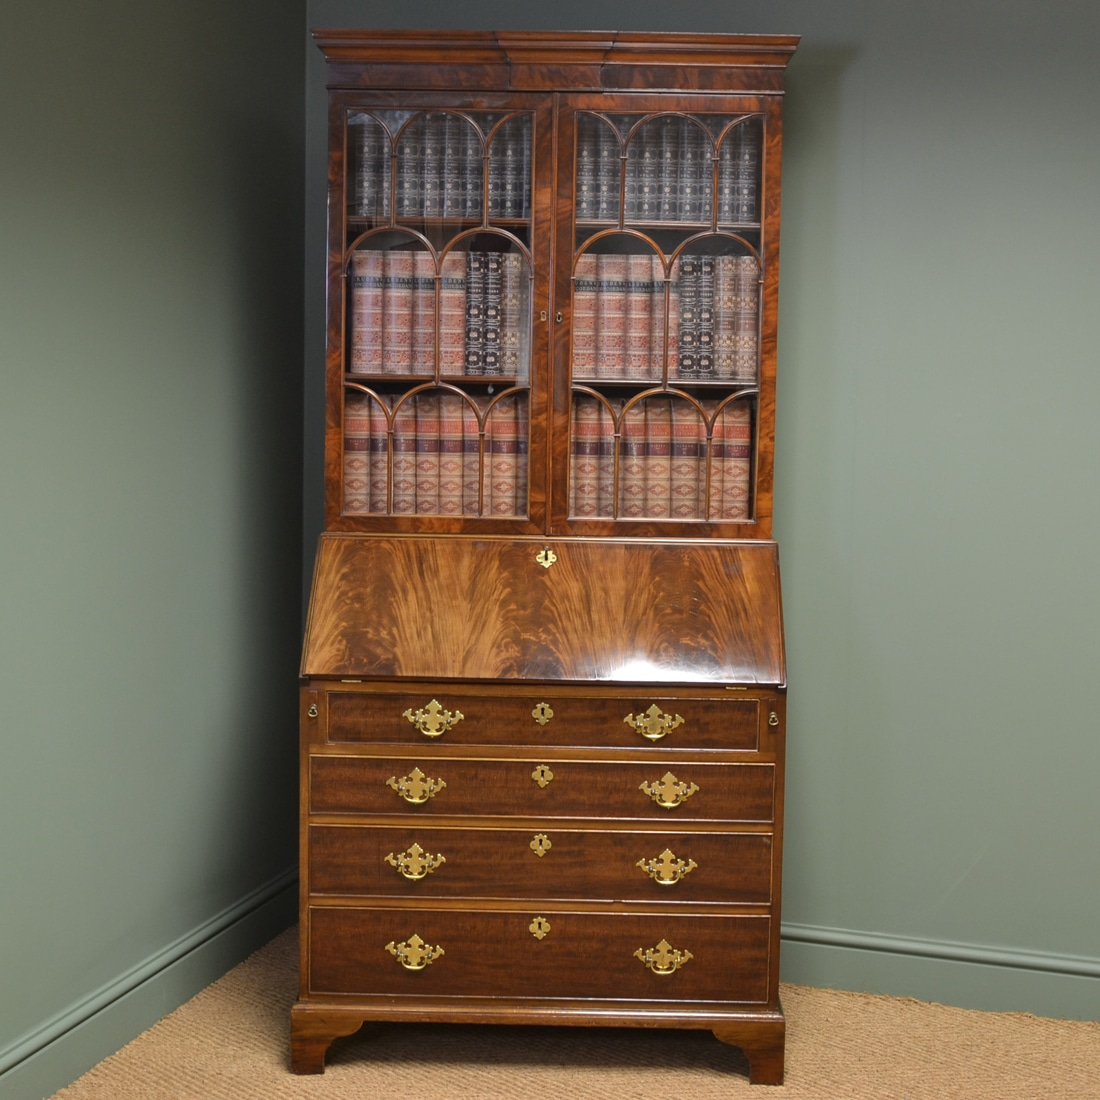 superb quality edwardian figured mahogany antique bureau bookcase antiques world. Black Bedroom Furniture Sets. Home Design Ideas